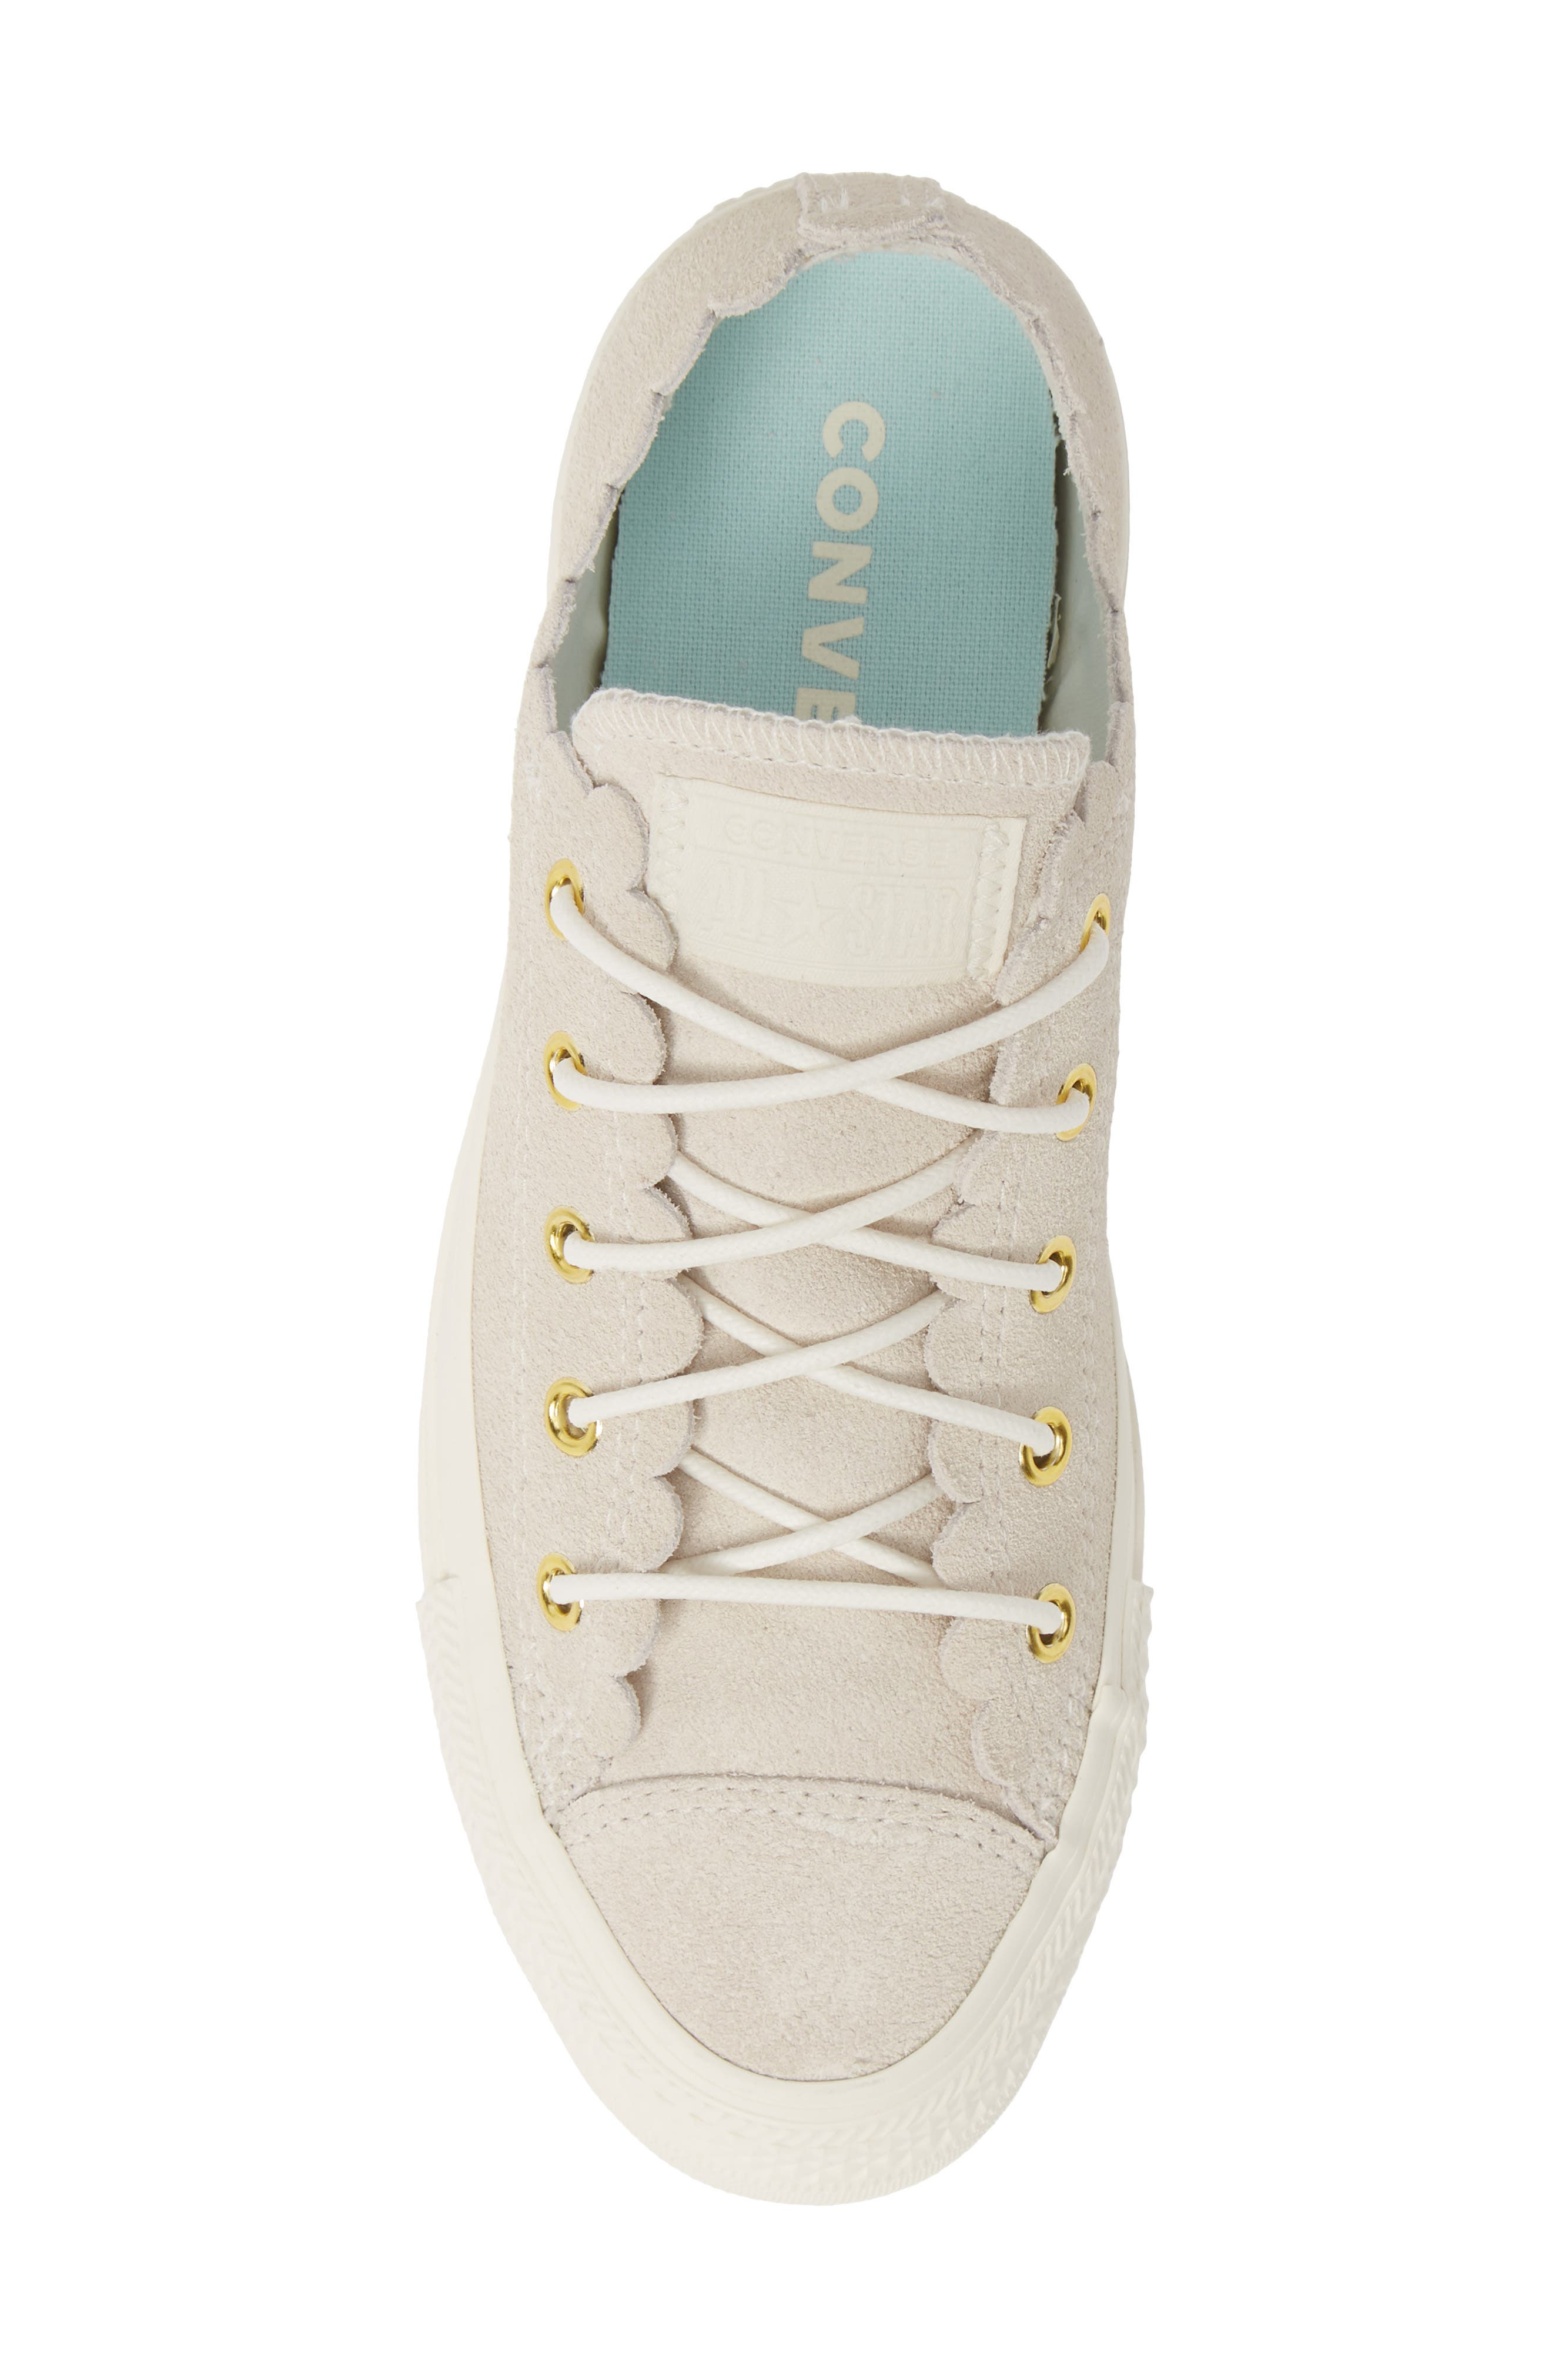 CONVERSE, Chuck Taylor<sup>®</sup> All Star<sup>®</sup> Scallop Low Top Leather Sneaker, Alternate thumbnail 5, color, EGRET/ GOLD/ EGRET